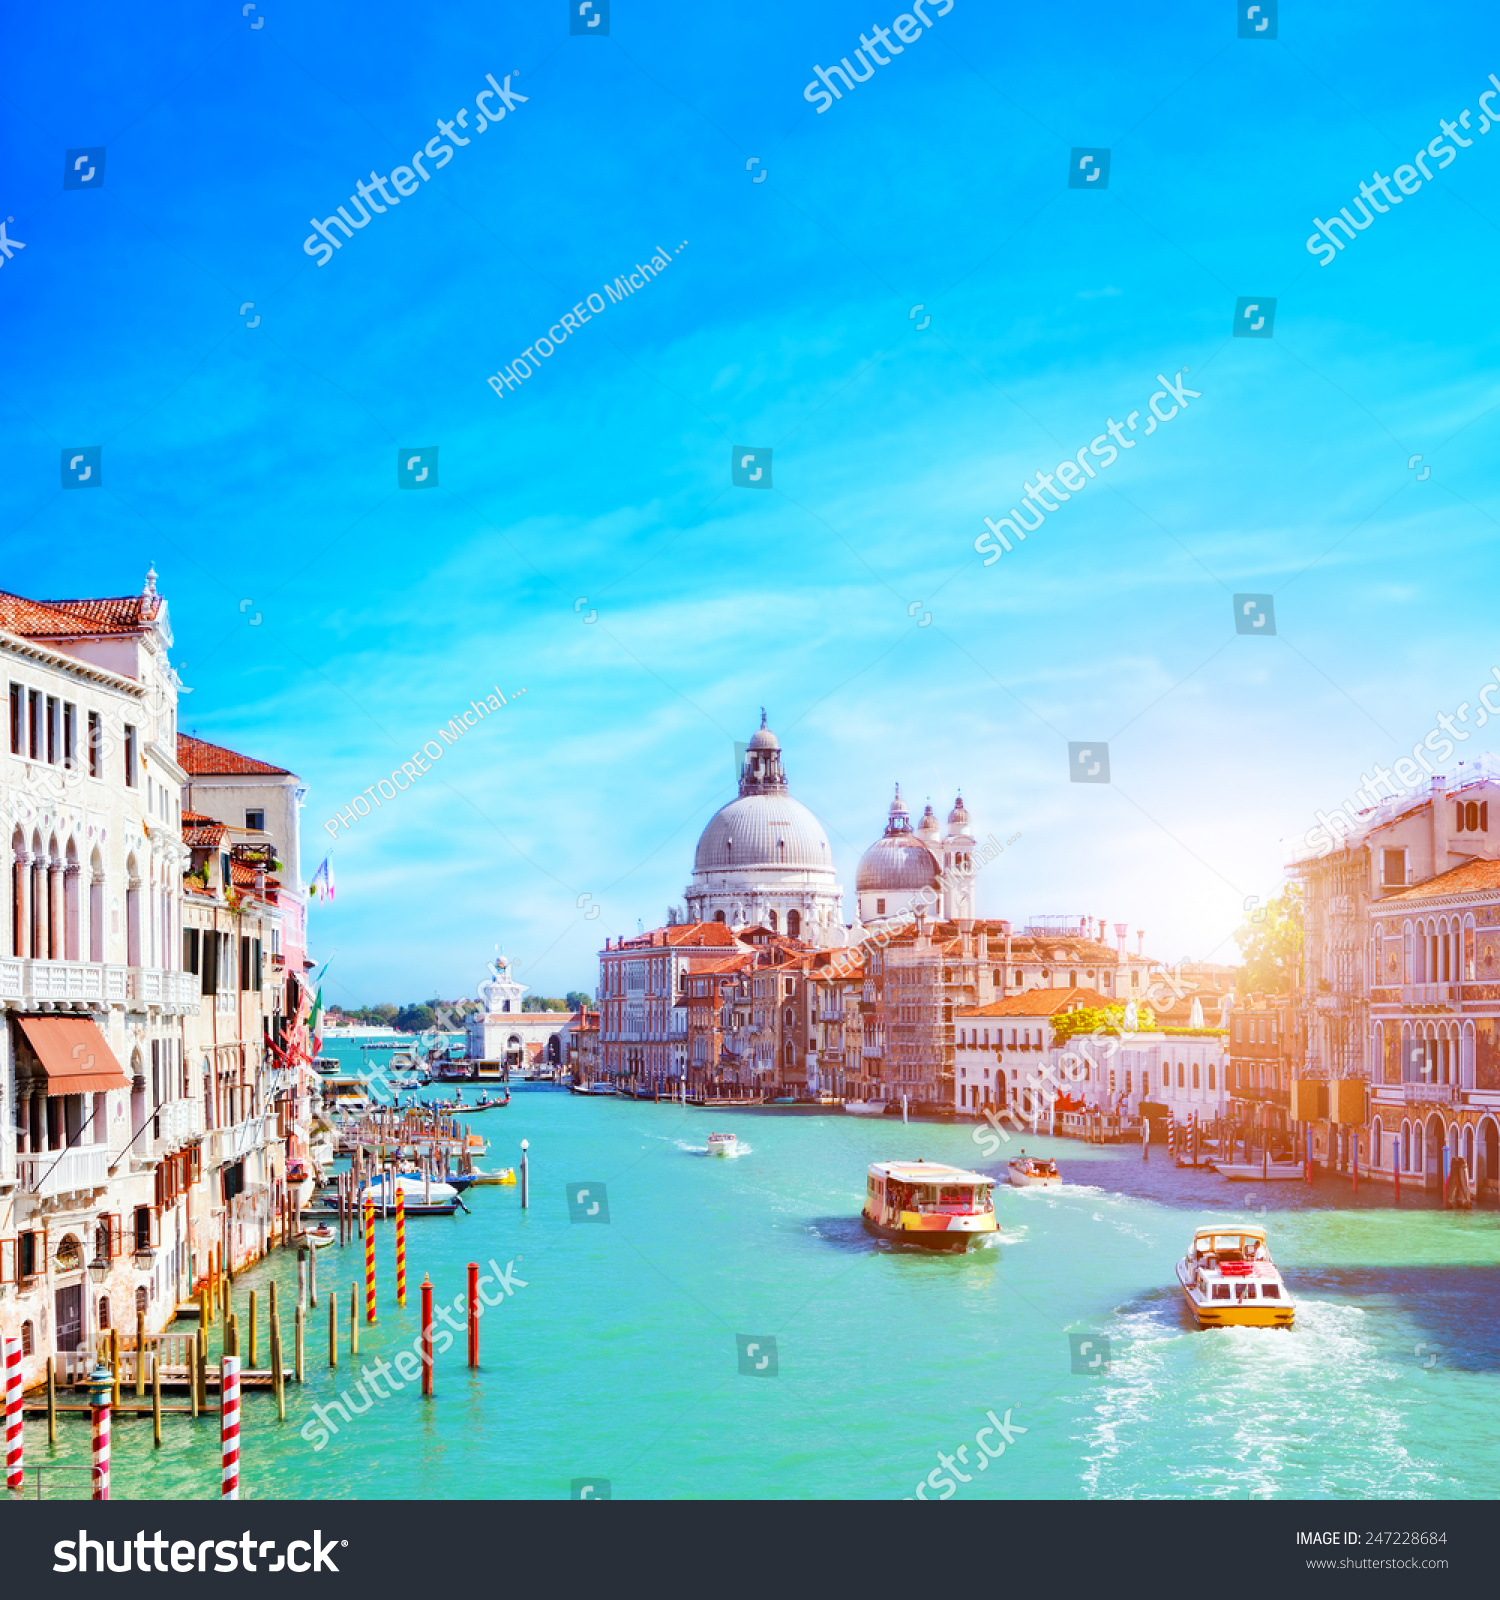 Venice, Italy. Grand Canal and the Salute at sunny day. Tourist boats View from Ponte dell Accademia #247228684